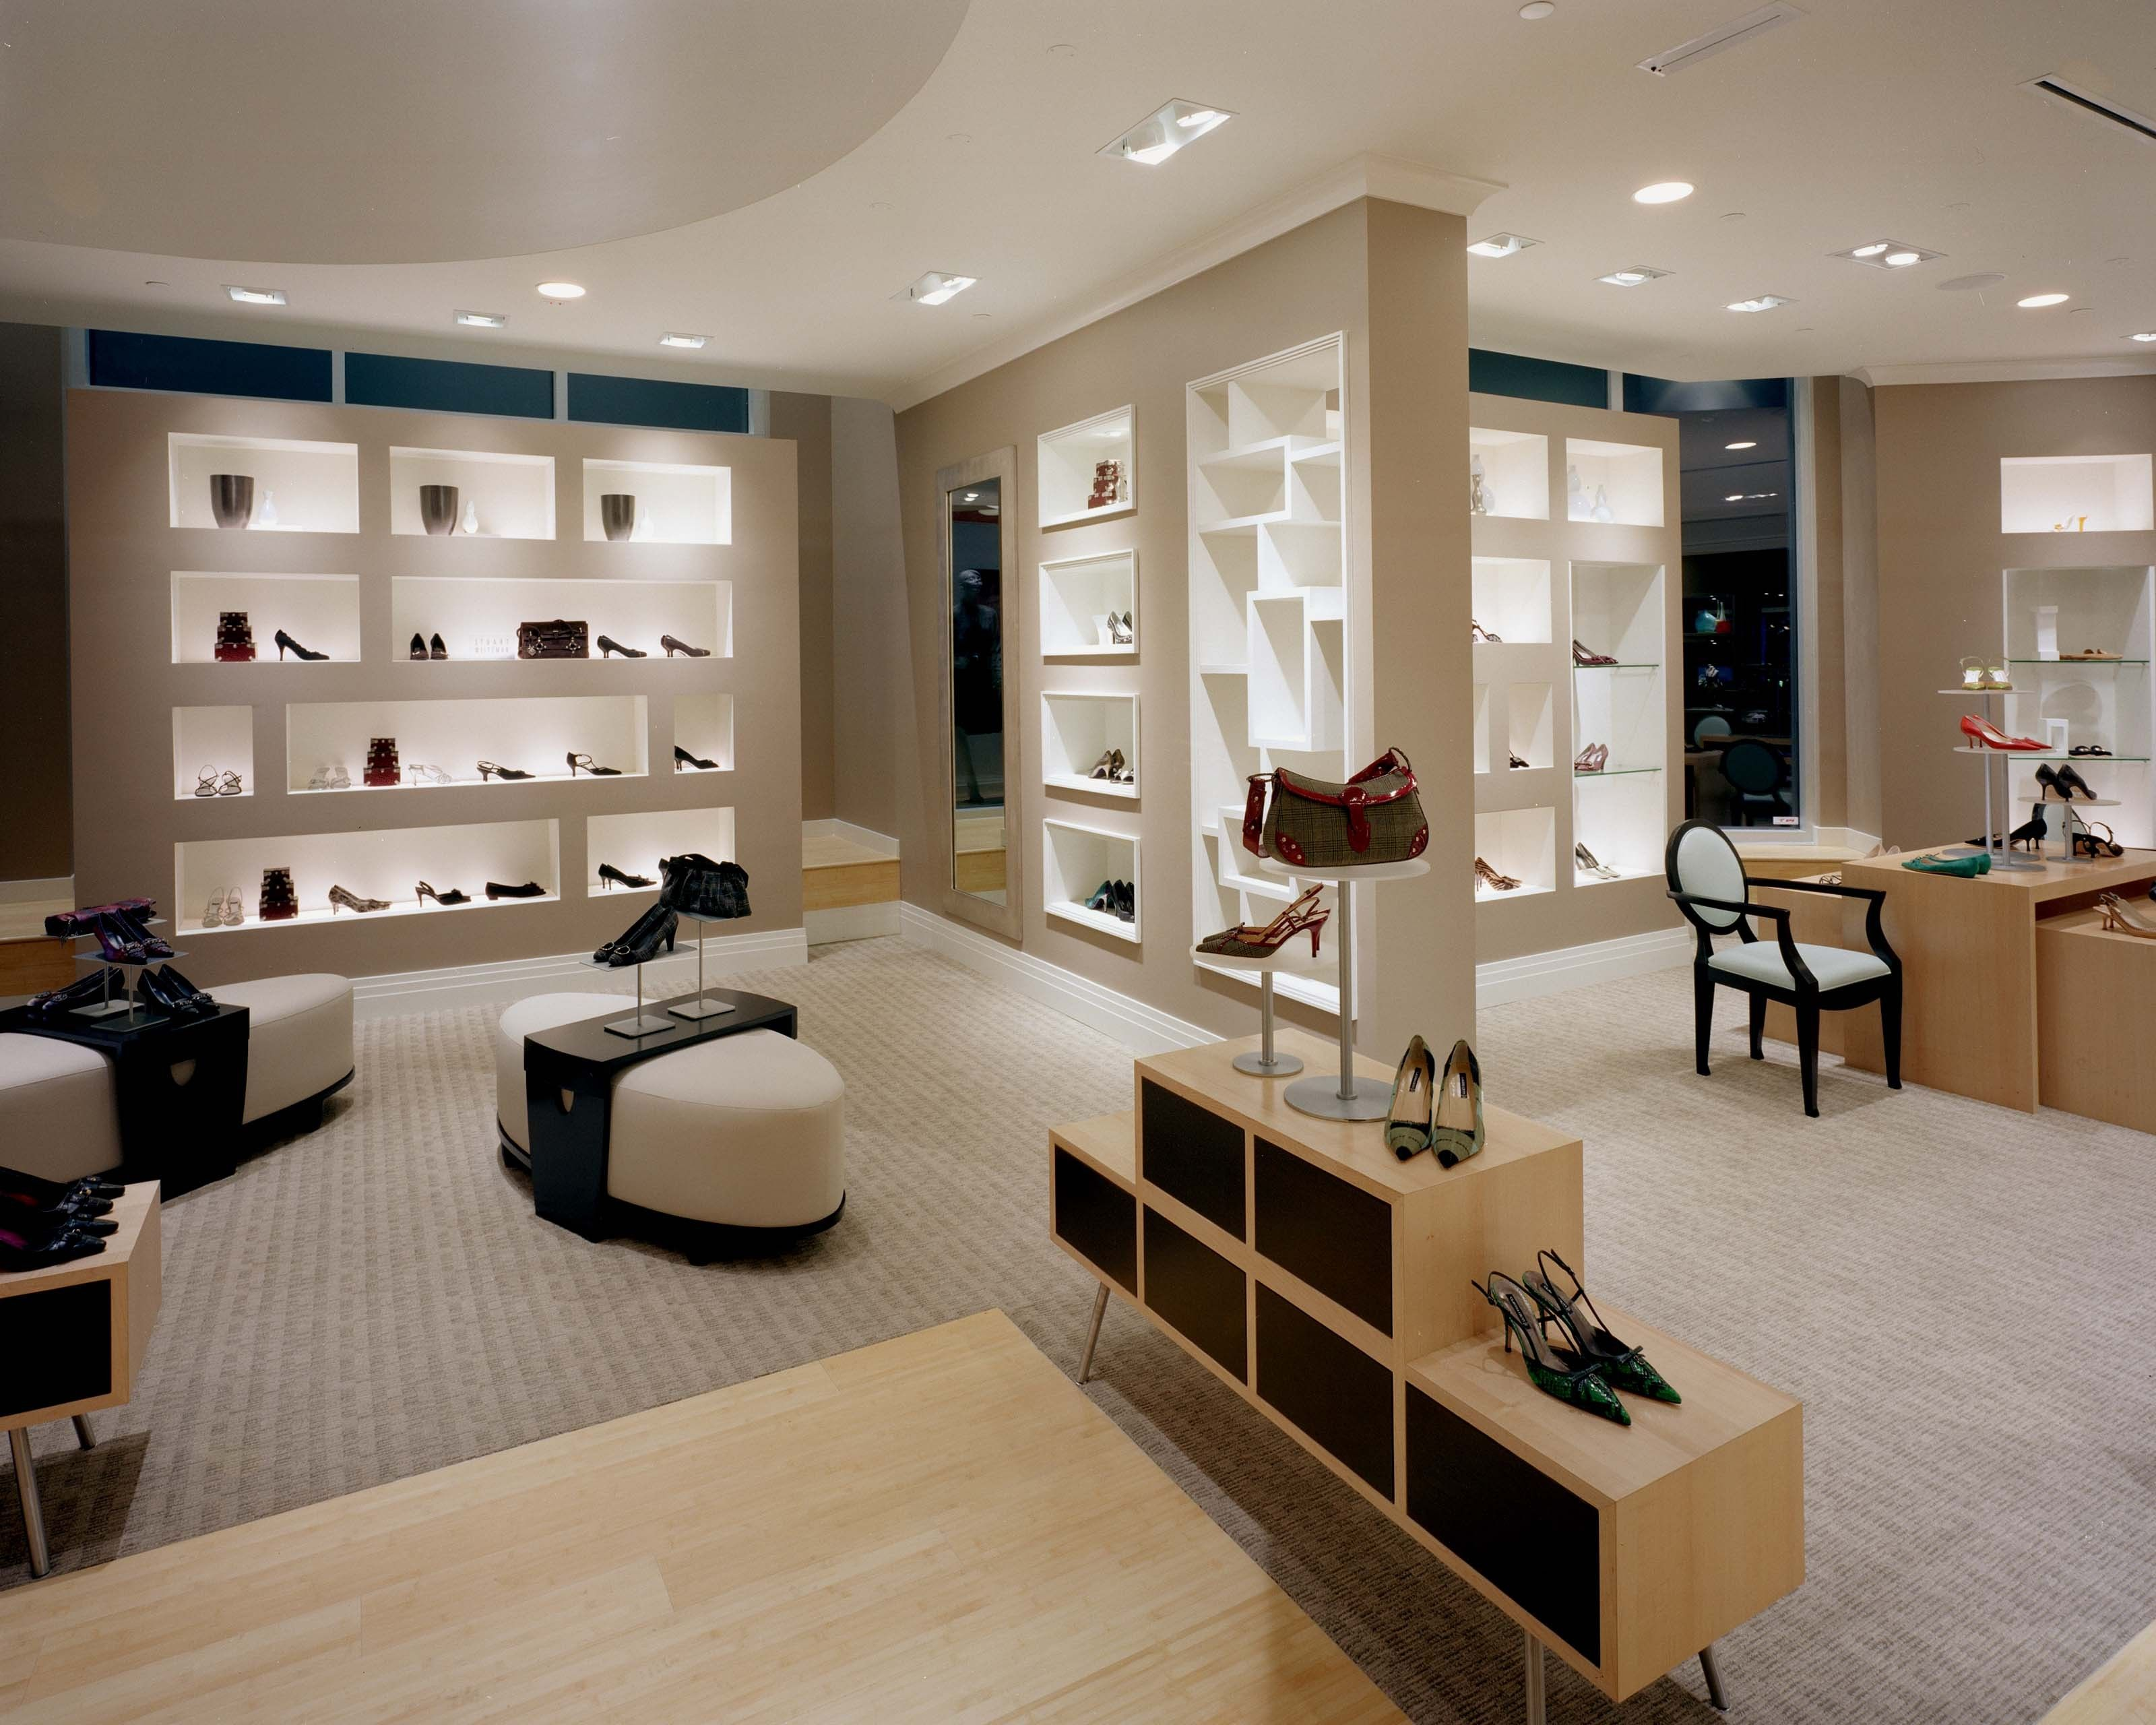 15 tips for how to design your retail store - Retail Store Design Ideas